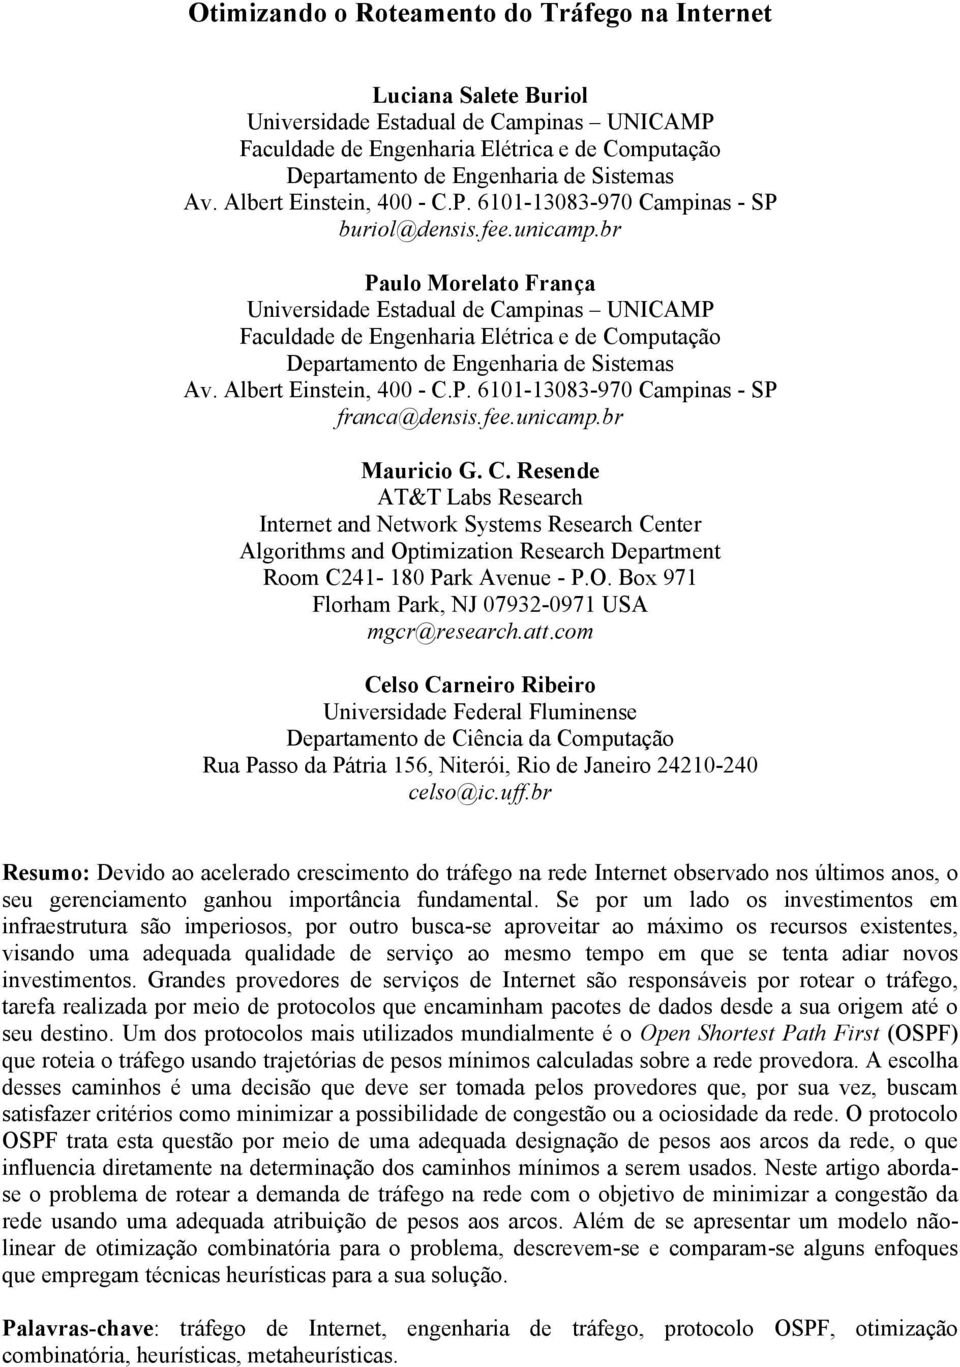 Albert Einein, 400 - C.P. 6101-13083-970 Cmpins - SP frnc@densis.fee.unicmp.br Muricio G. C. Resende AT&T Lbs Reserch Internet nd Network Syems Reserch Center Algorithms nd Optimiztion Reserch Deprtment Room C241-180 Prk Avenue - P.